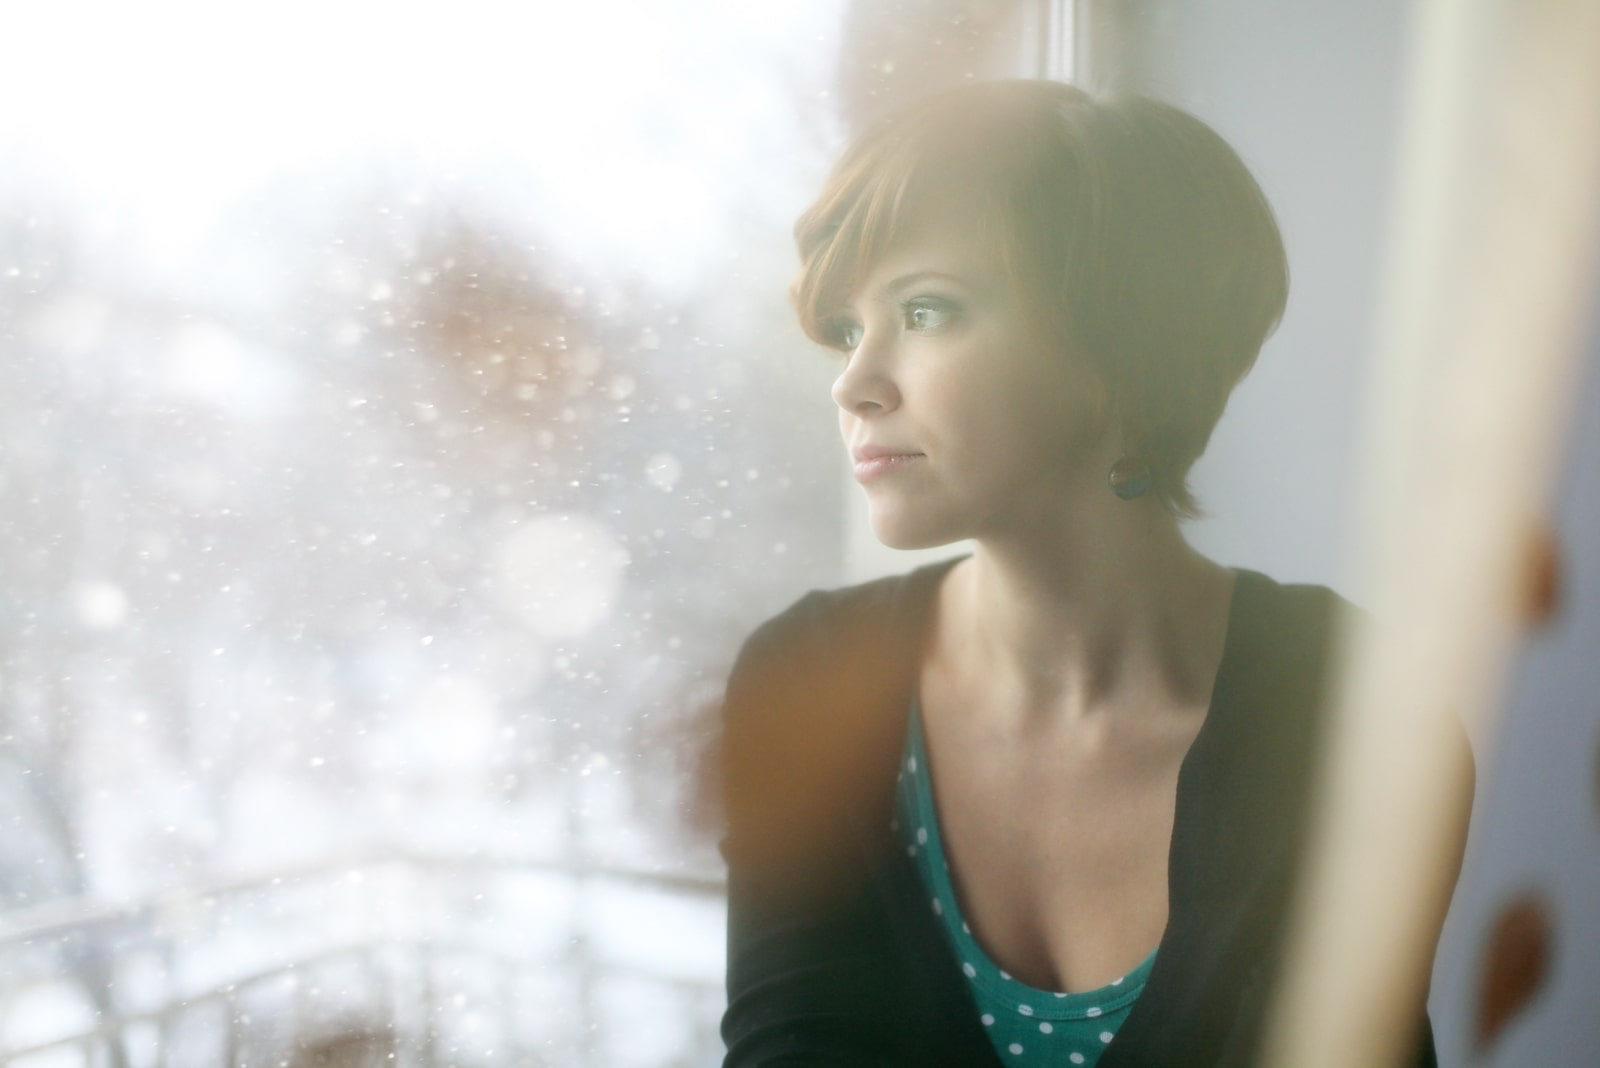 a short-haired woman looks out the window